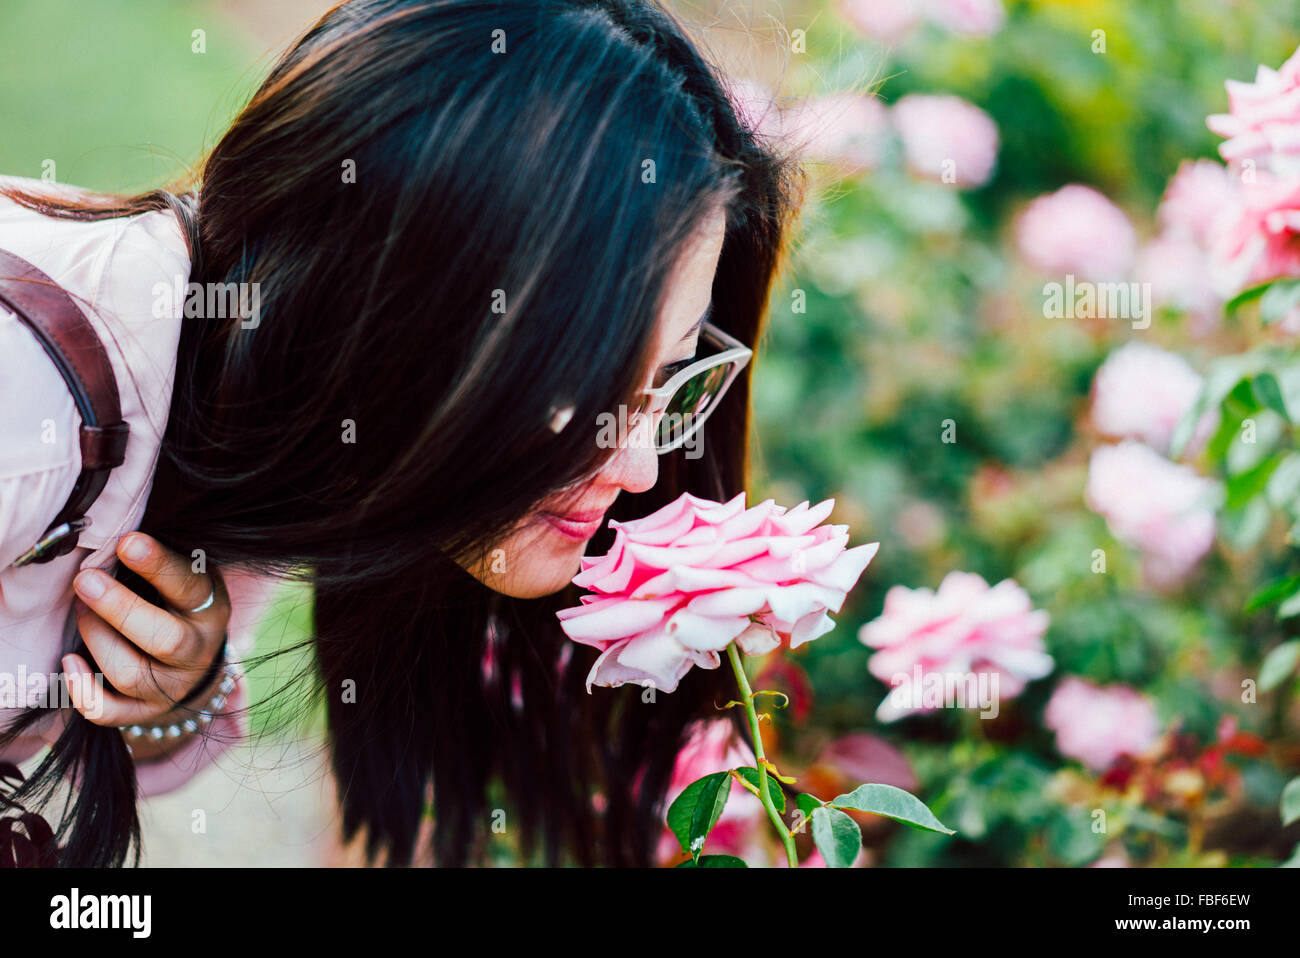 Close-Up Of Young Woman Smelling Pink Flower - Stock Image